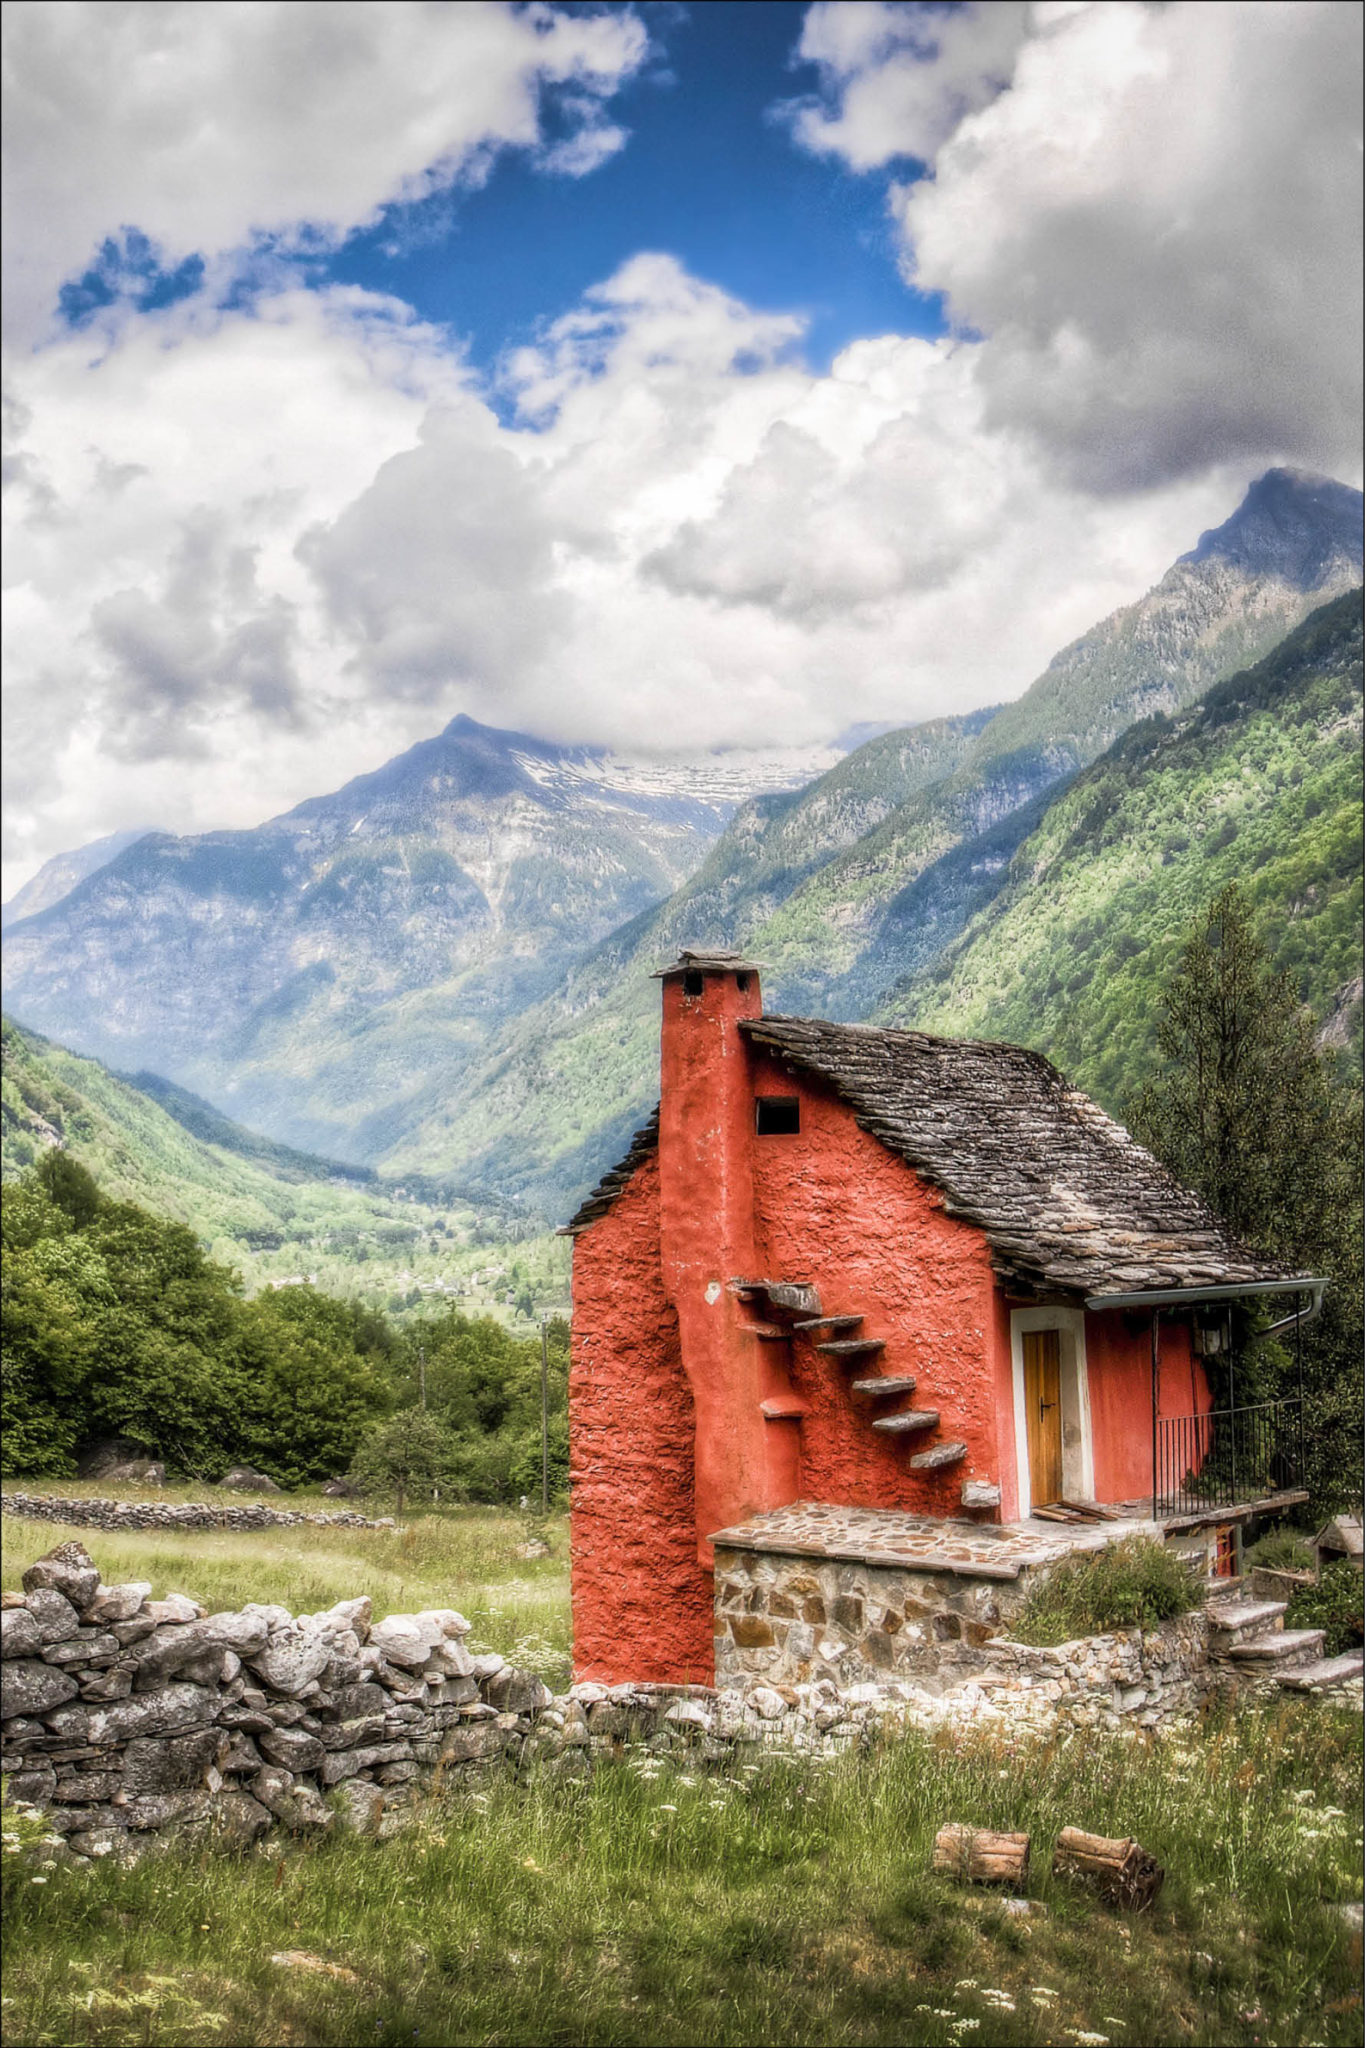 Red tiny home nesteled within mountain region